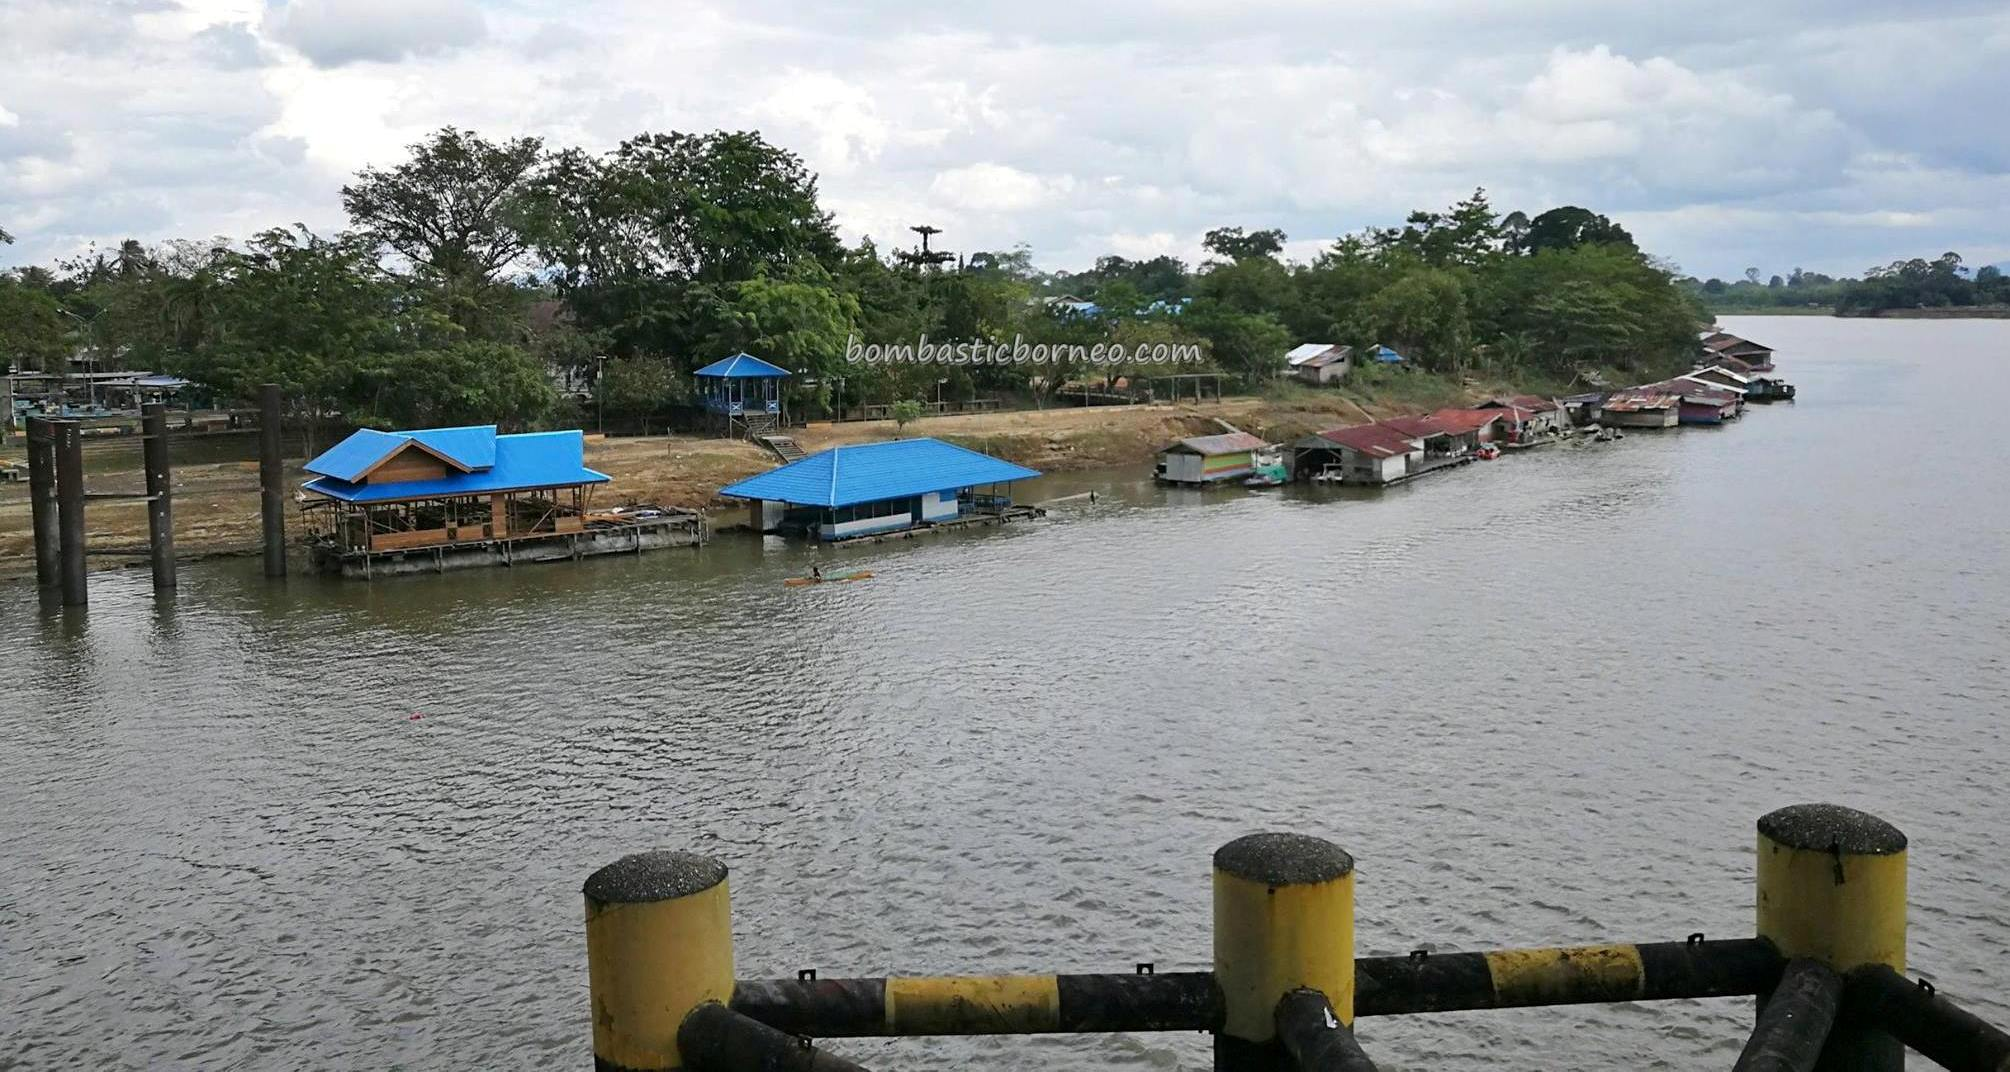 Jembatan Kapuas, rumah lanting, Sungai Kapuas, adventure, backpackers, destination, Indonesia, West Kalimantan, Kapuas hulu, Obyek wisata, Tourism, tourist attraction, traditional, transborder, 婆罗洲西加里曼丹